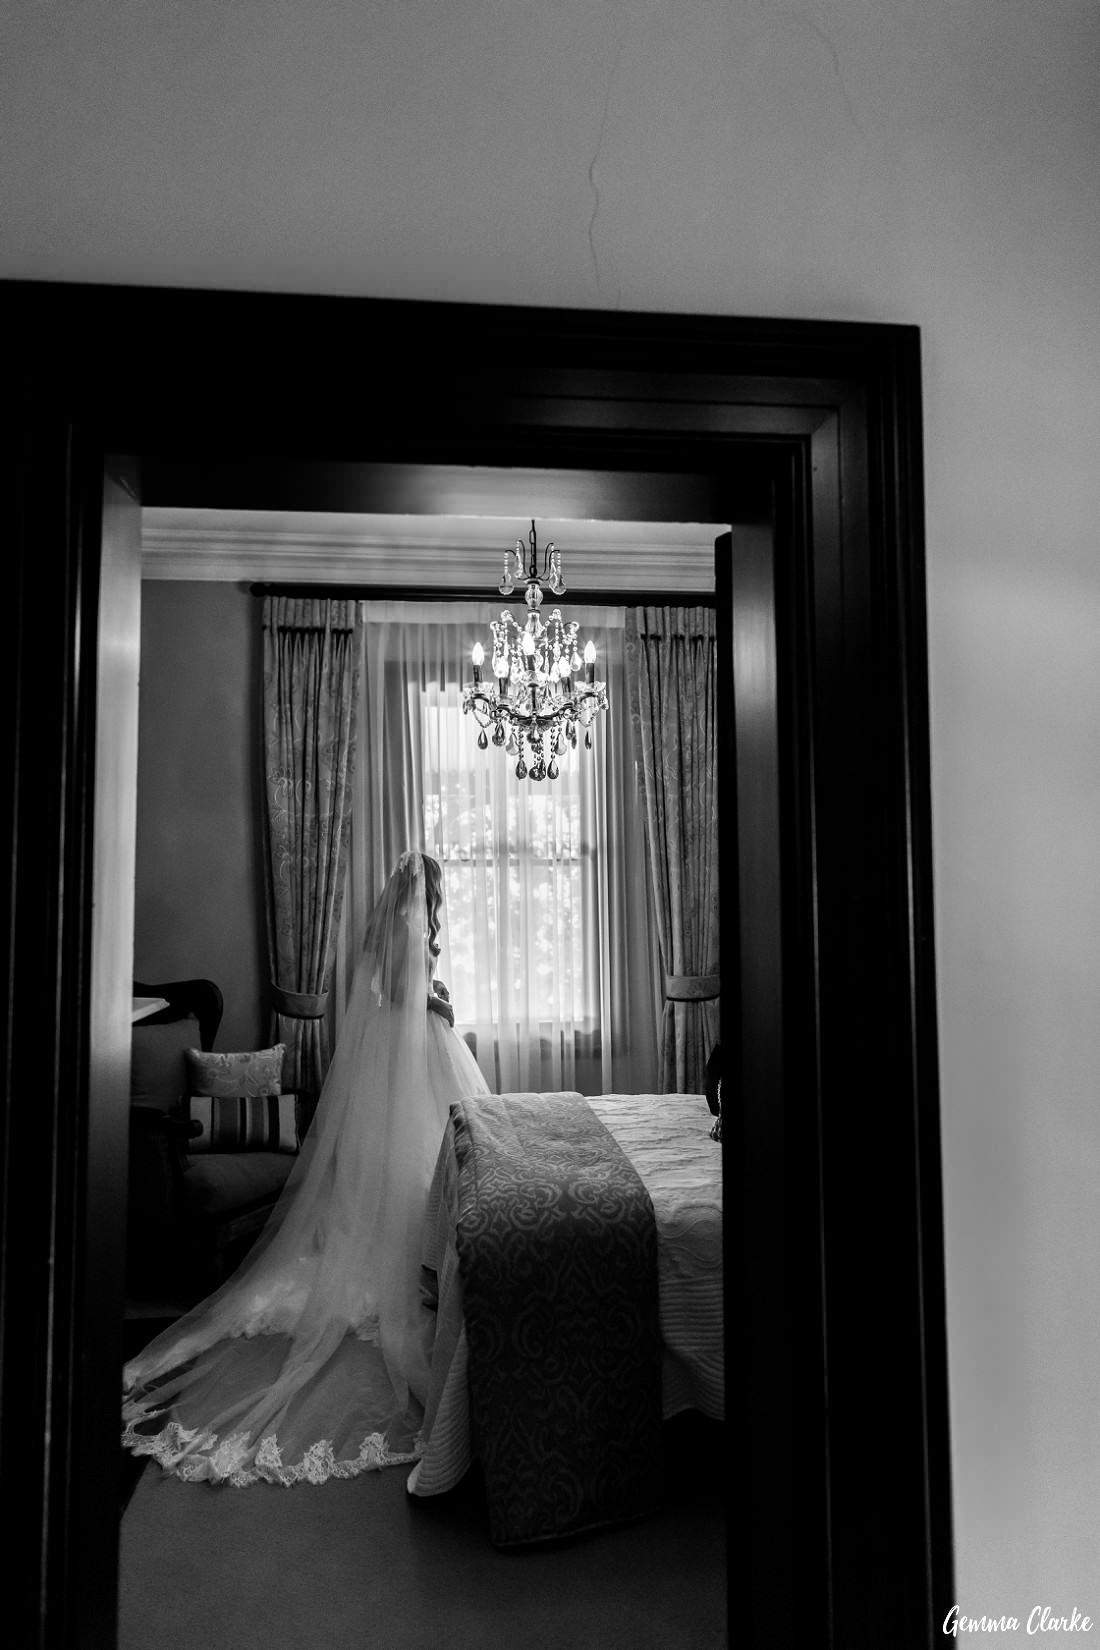 Bride in a luxurious bedroom looking out the window with stunning window dressing and a chandelier hanging from the ceiling at this Burnham Grove Estate wedding